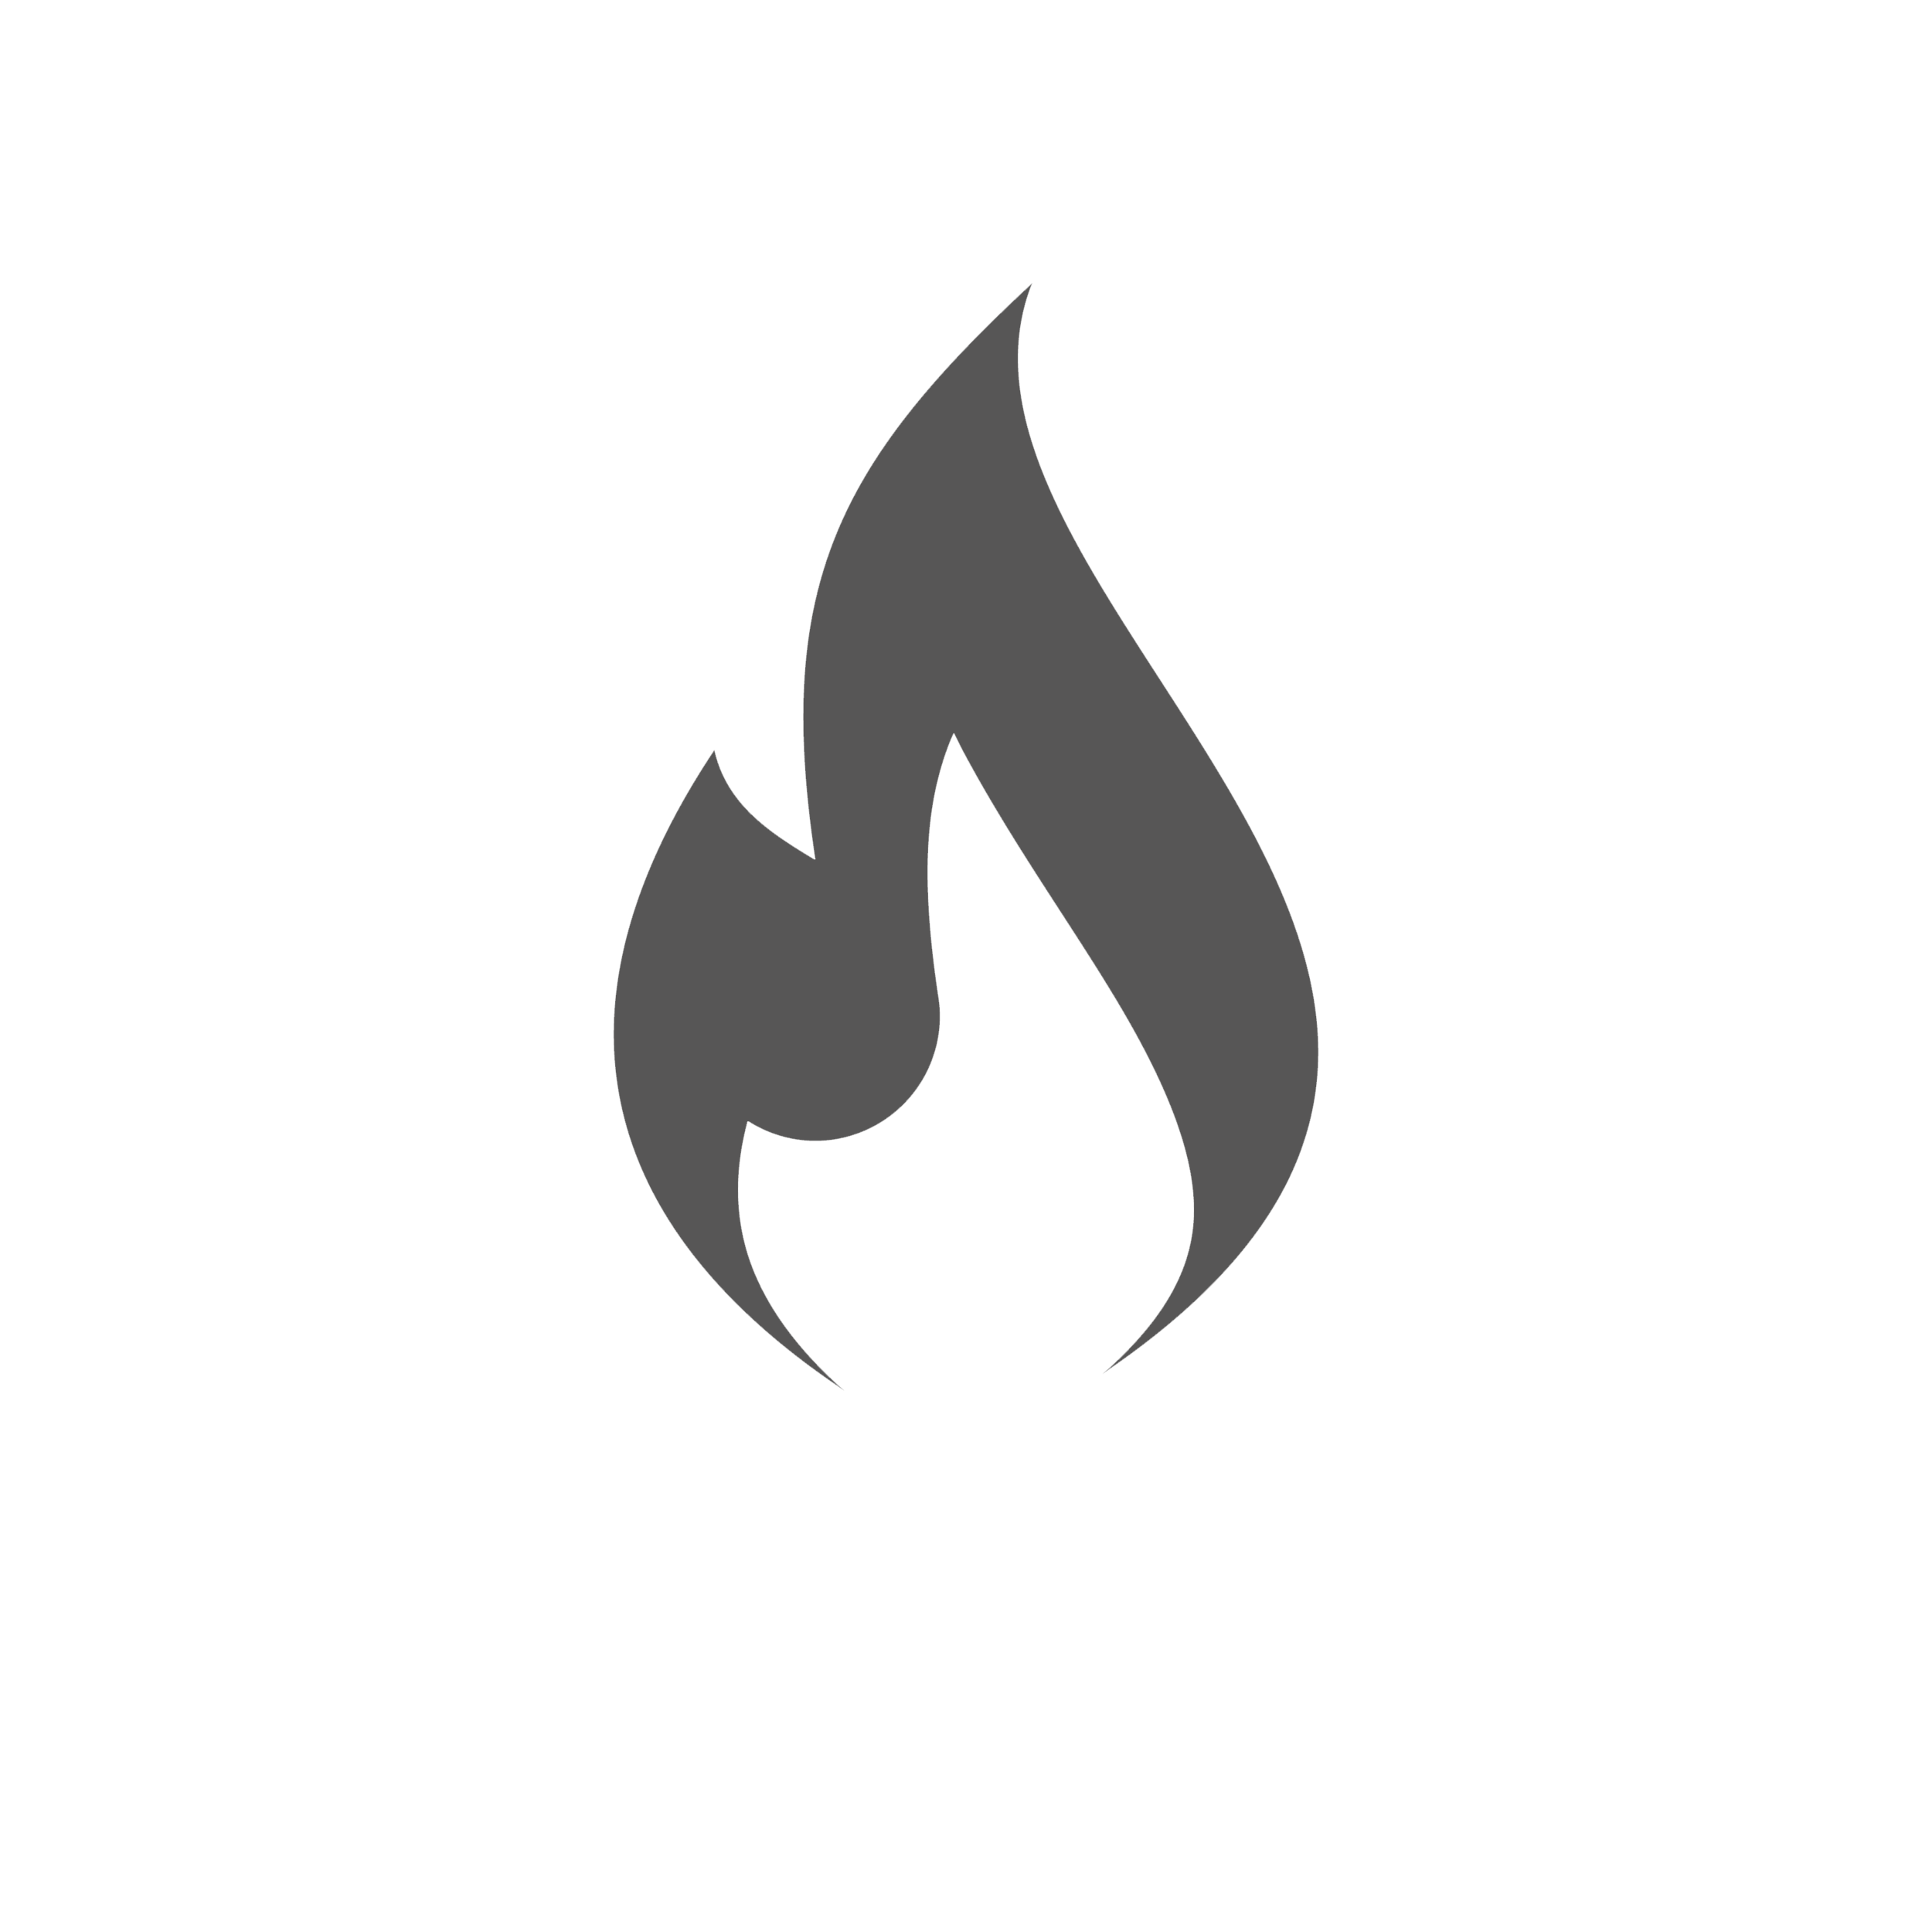 Practically Fire Proof - Tristone does not allow fire to spread. It has Class 0 Warrington Fire Certification and has been classed as building material B1 according to DIN 4102 classification.Learn More